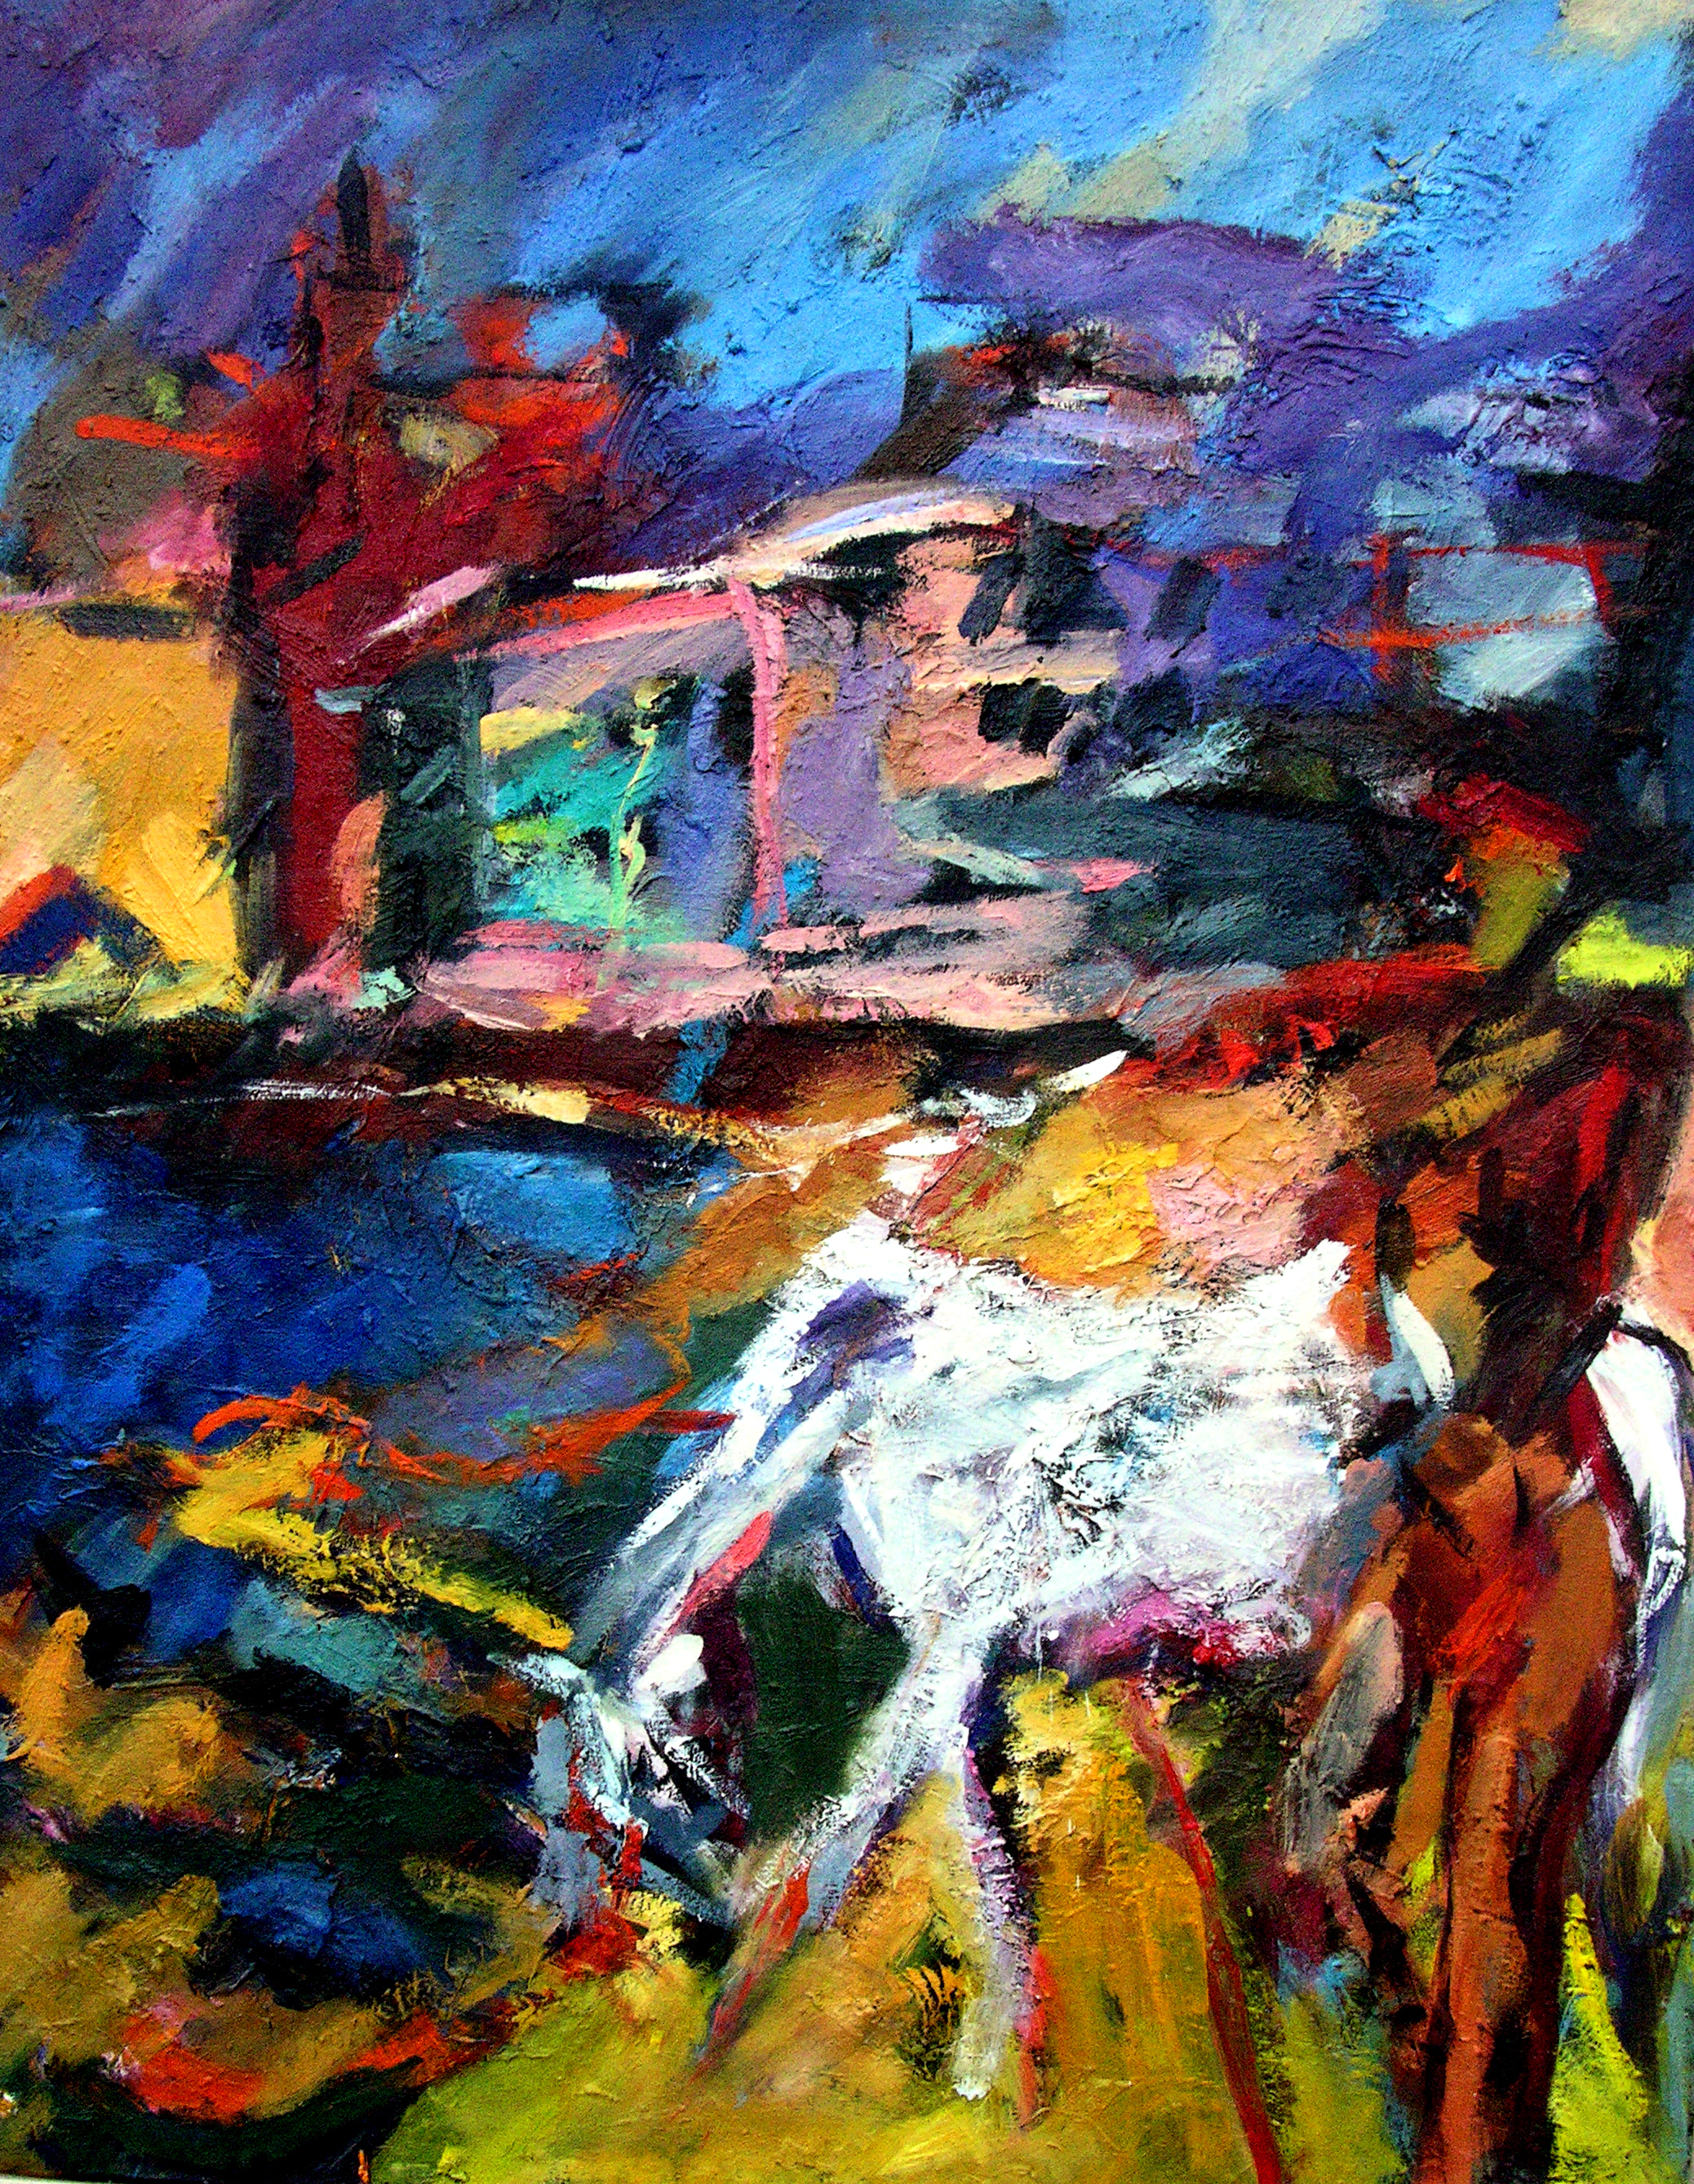 ronan -walsh- woman with white-horse,oil on canvas-36x47ins-2004 -$16,400,00alt text,fine-art-oil painting-waterront..jpg